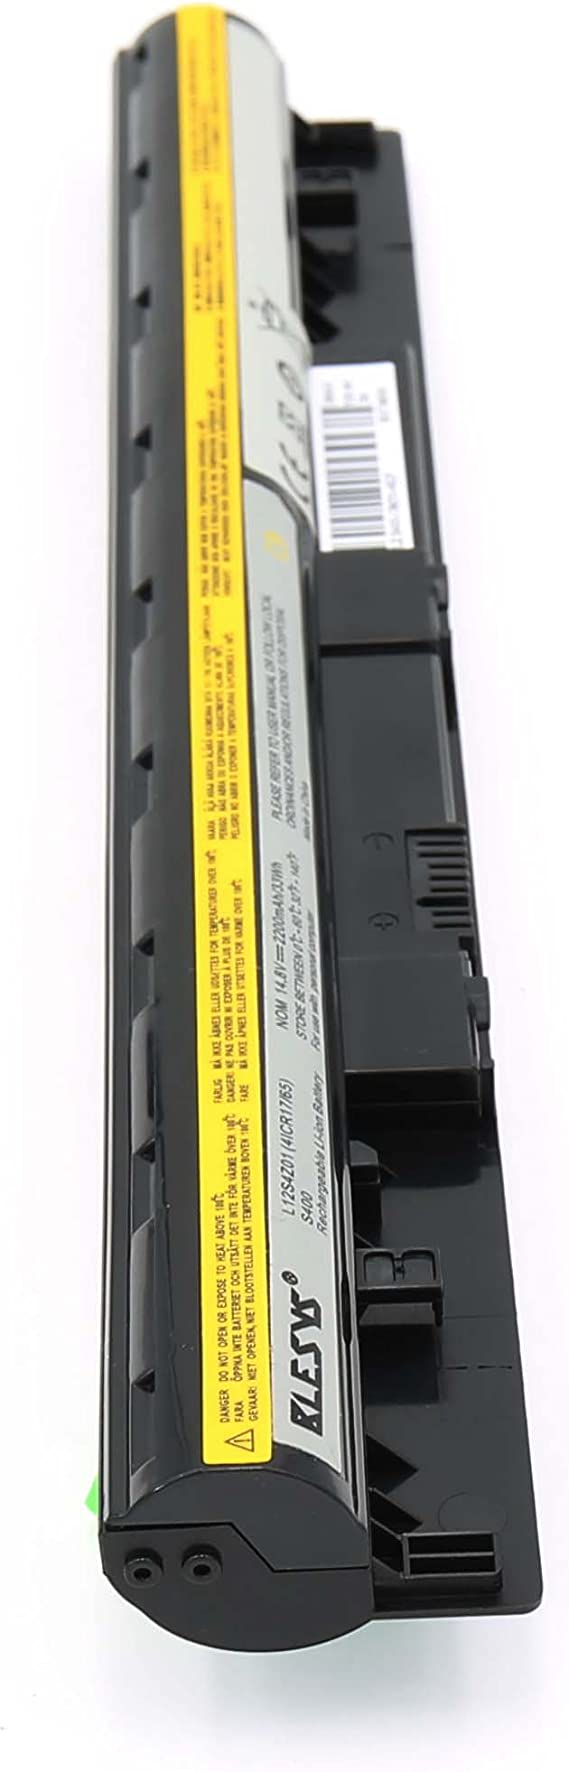 Laptop Accessories Batteries 80H8 Notebook 14.8V 2200mAh 33Wh ...